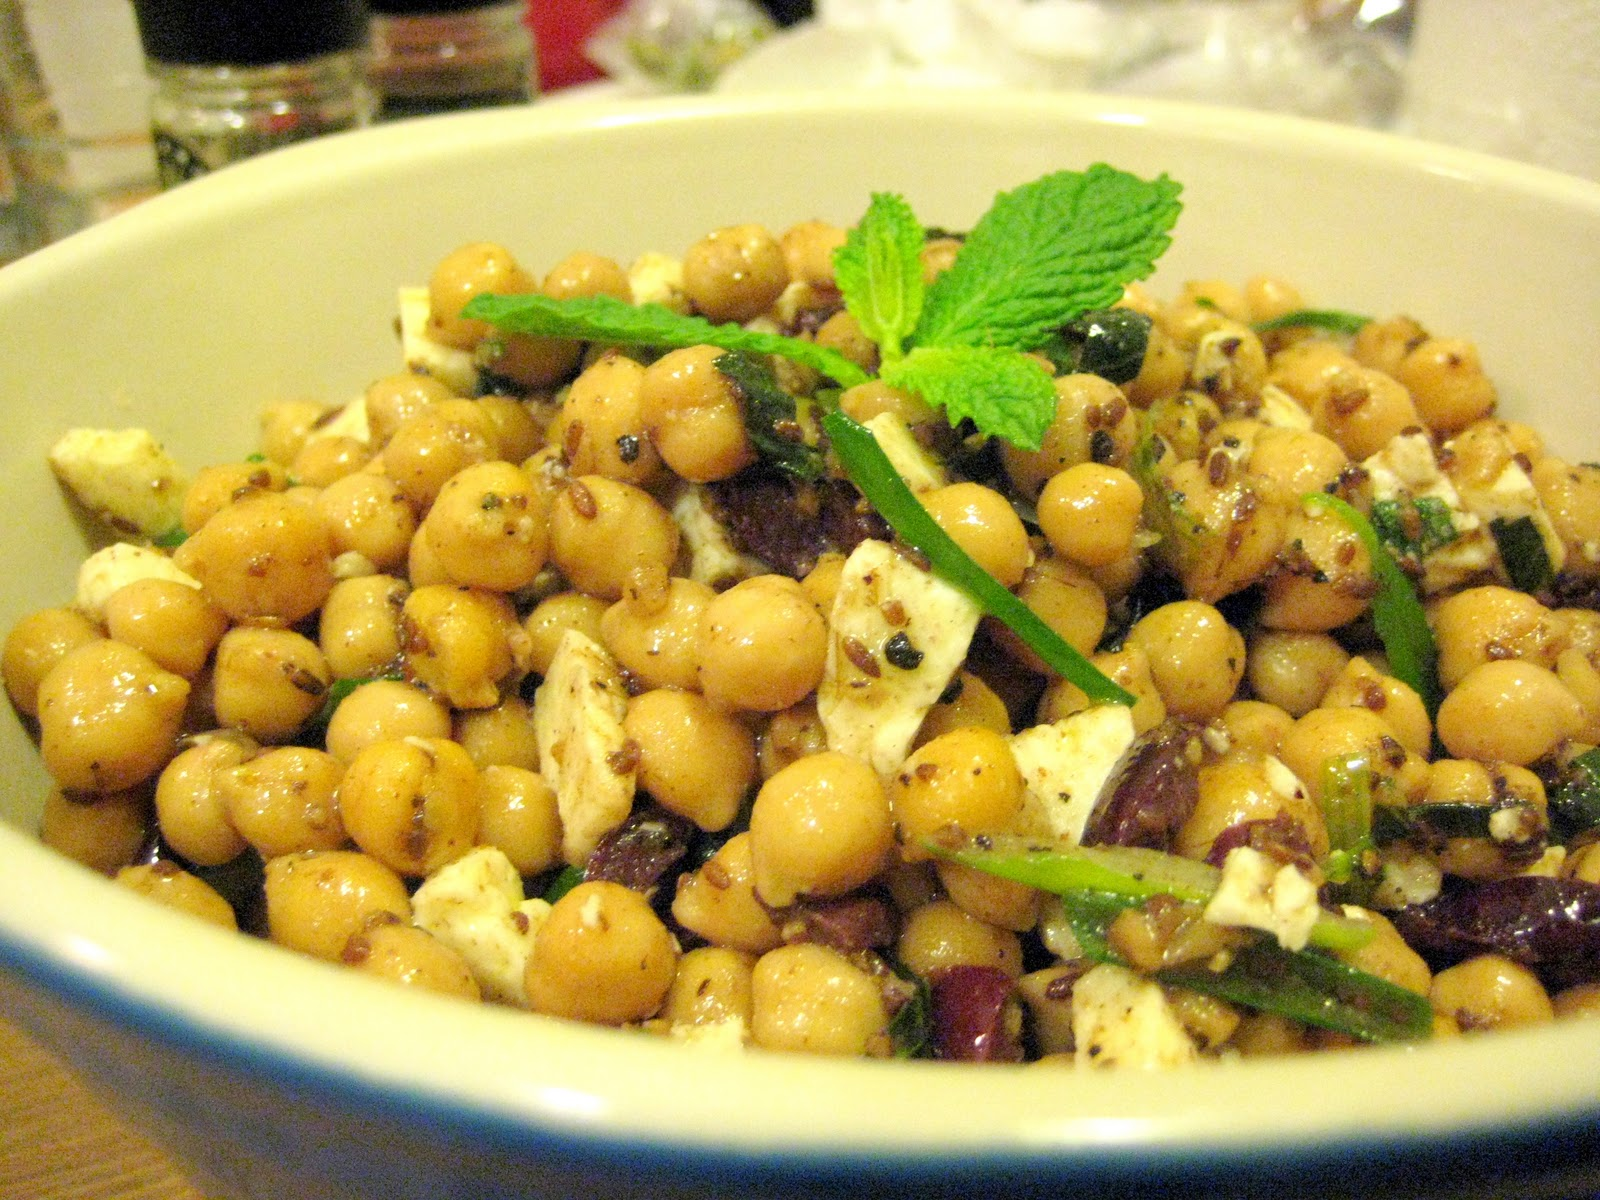 Test Kitchen: Test: Chickpea Salad with Cumin Vinaigrette